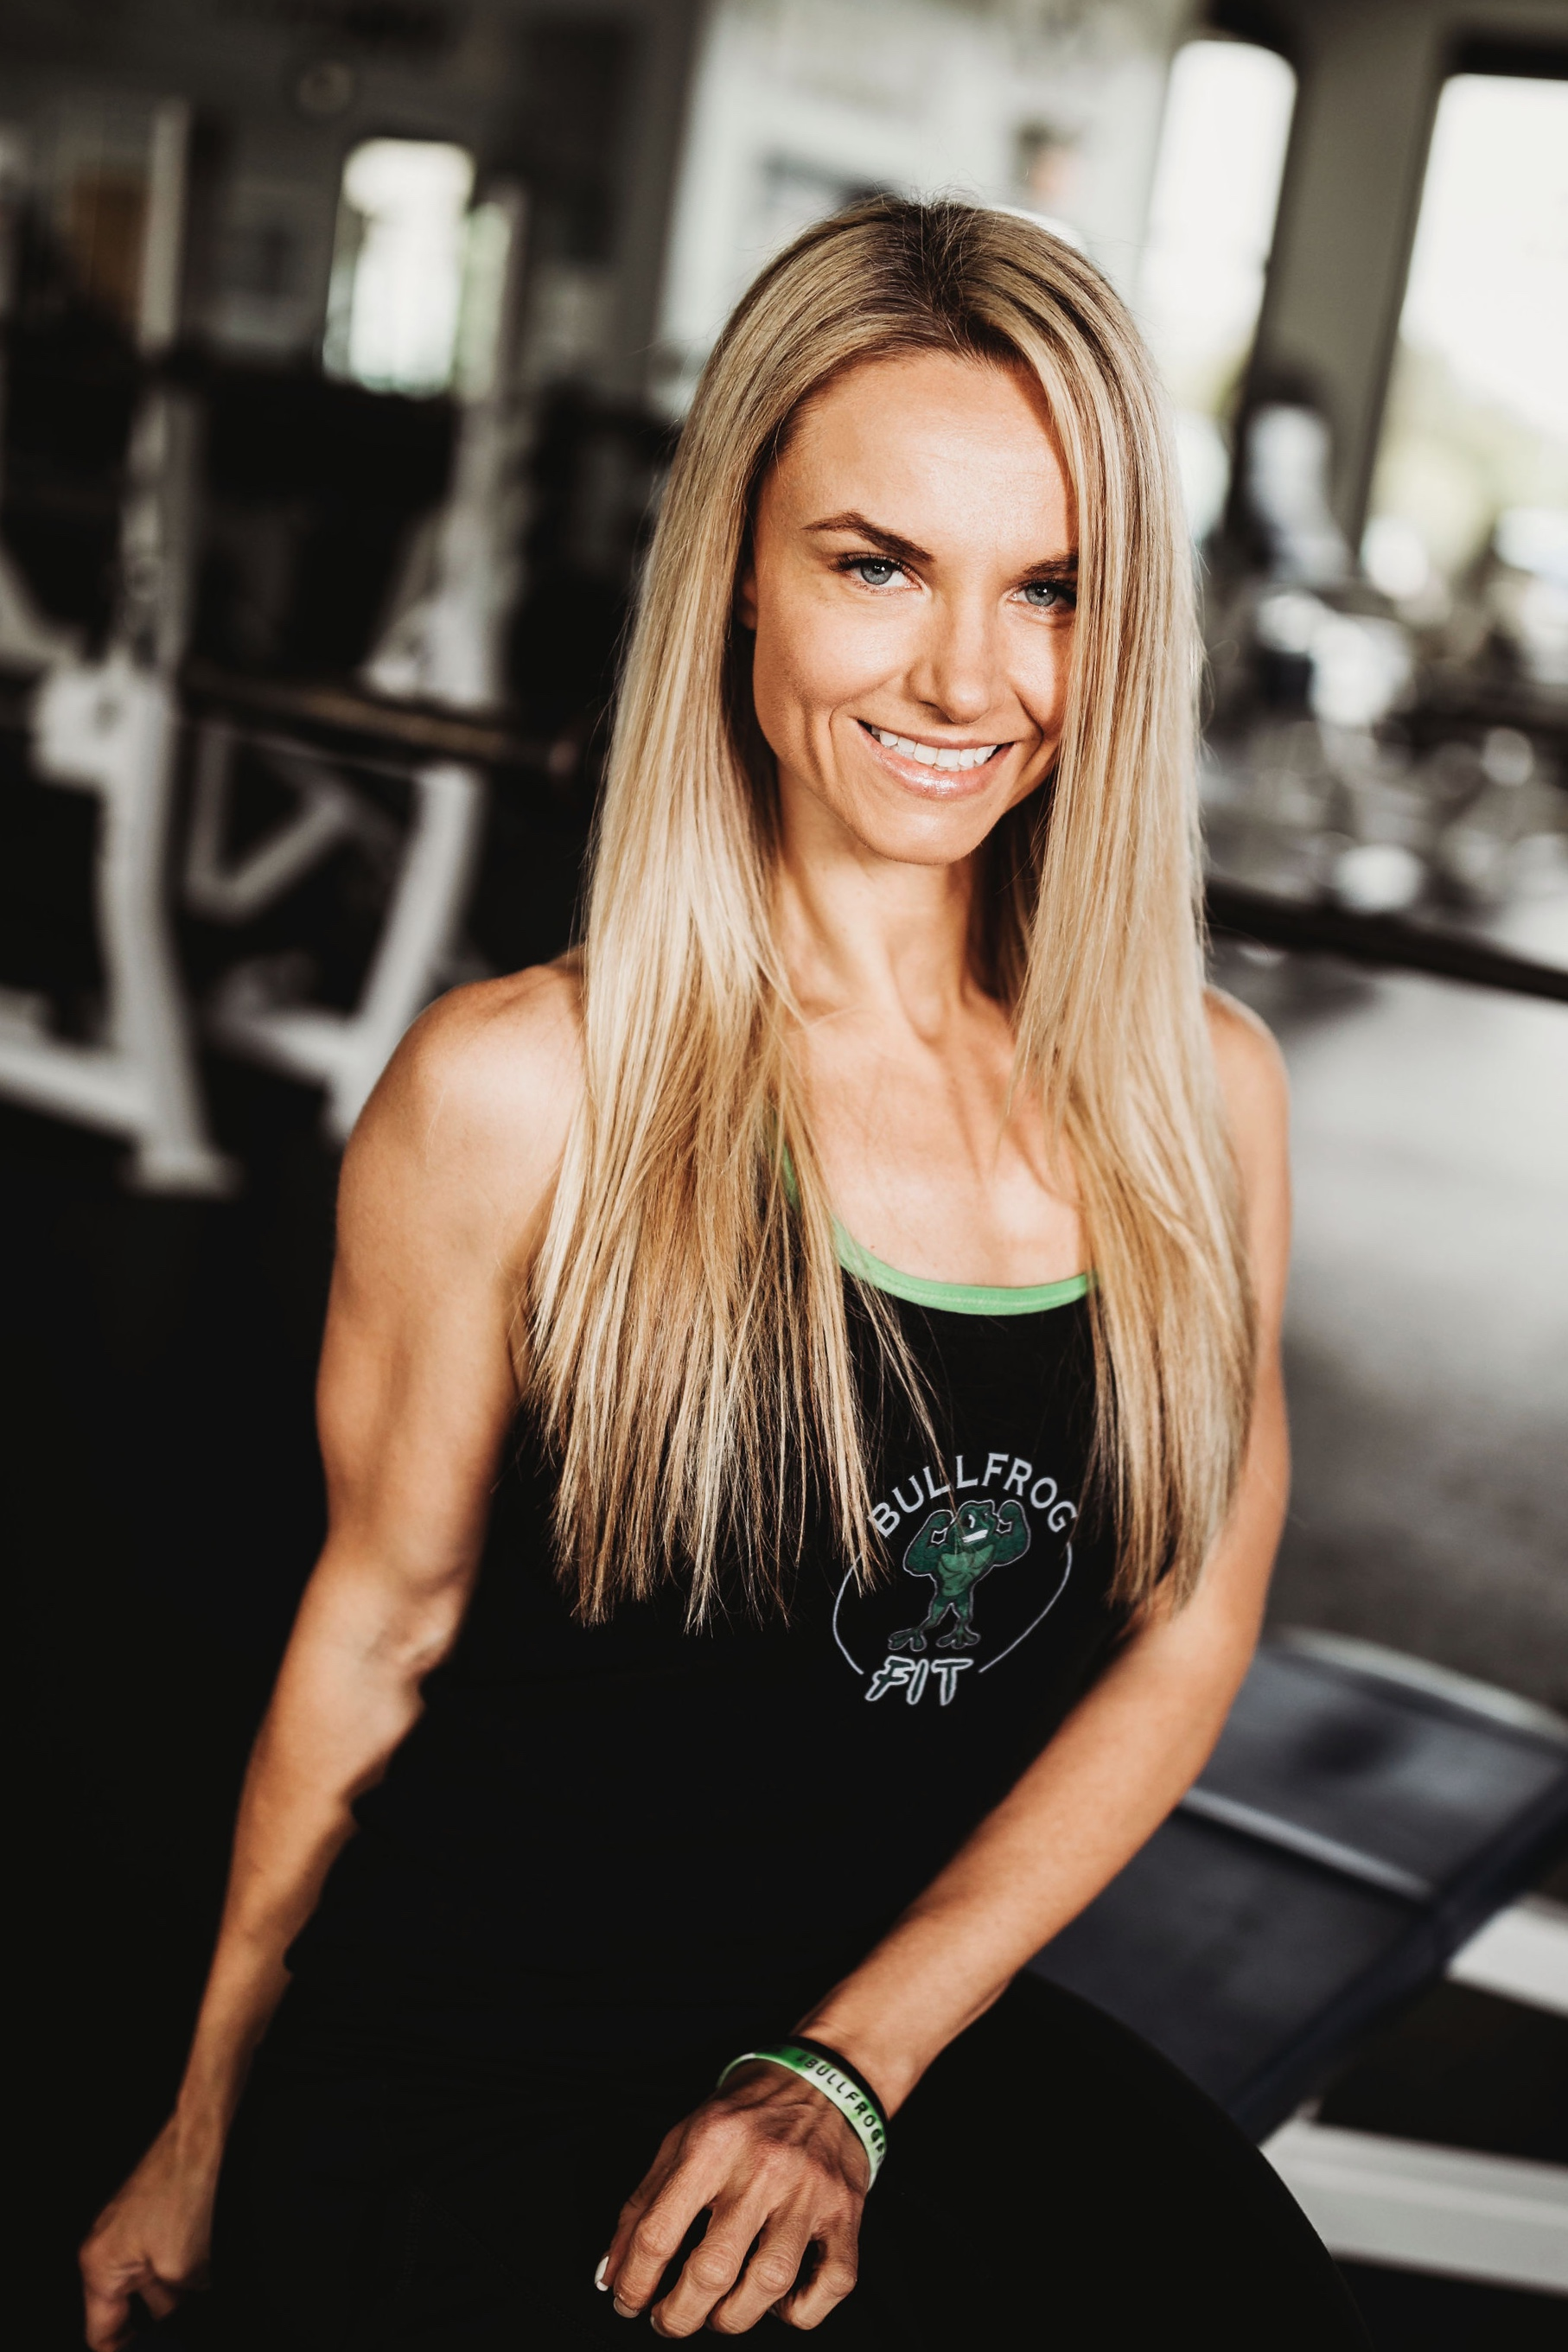 ACE    Certified Personal Trainer     GRIT    Les Mills Instructor     WBFF    Bikini Competitor    Contact Mindy - 401-924-4806